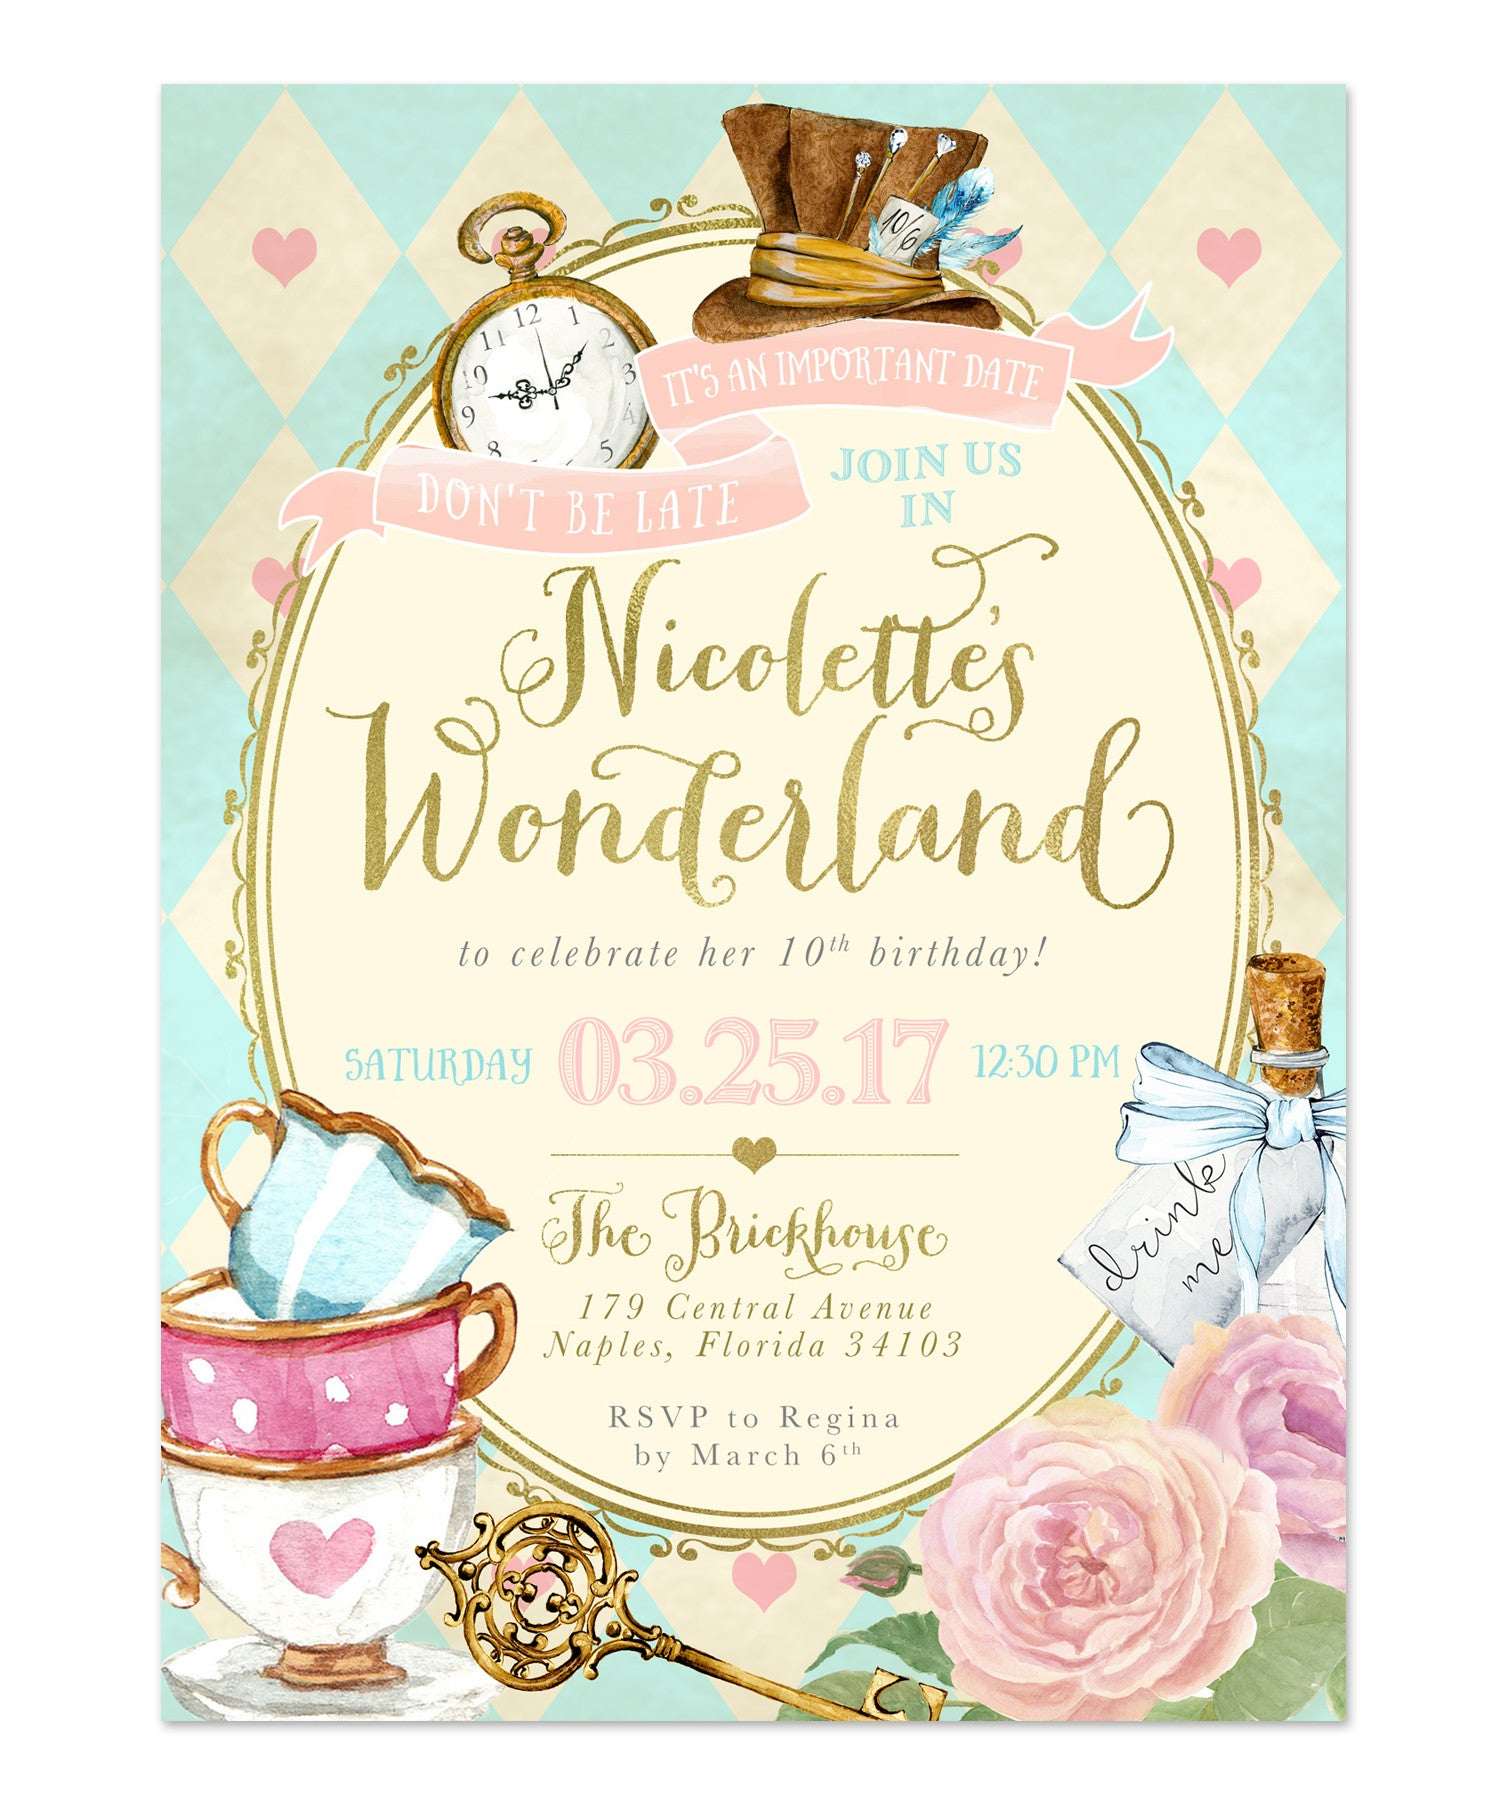 Alice in wonderland birthday party invitation girls themed alice in wonderland girls birthday party invitation filmwisefo